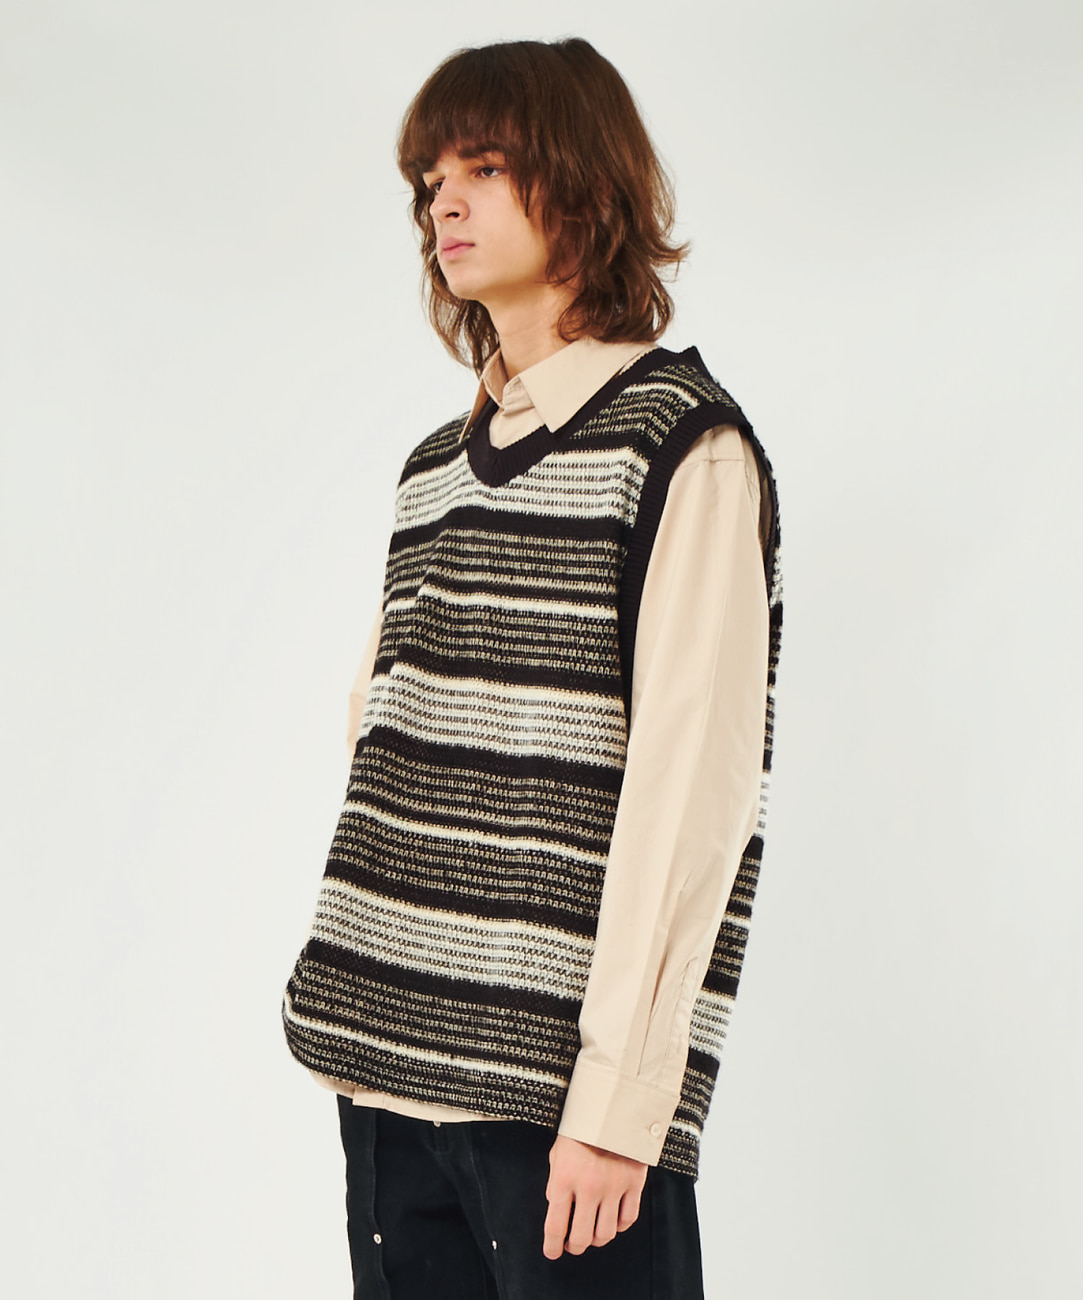 DWS V-NECK KNIT VEST